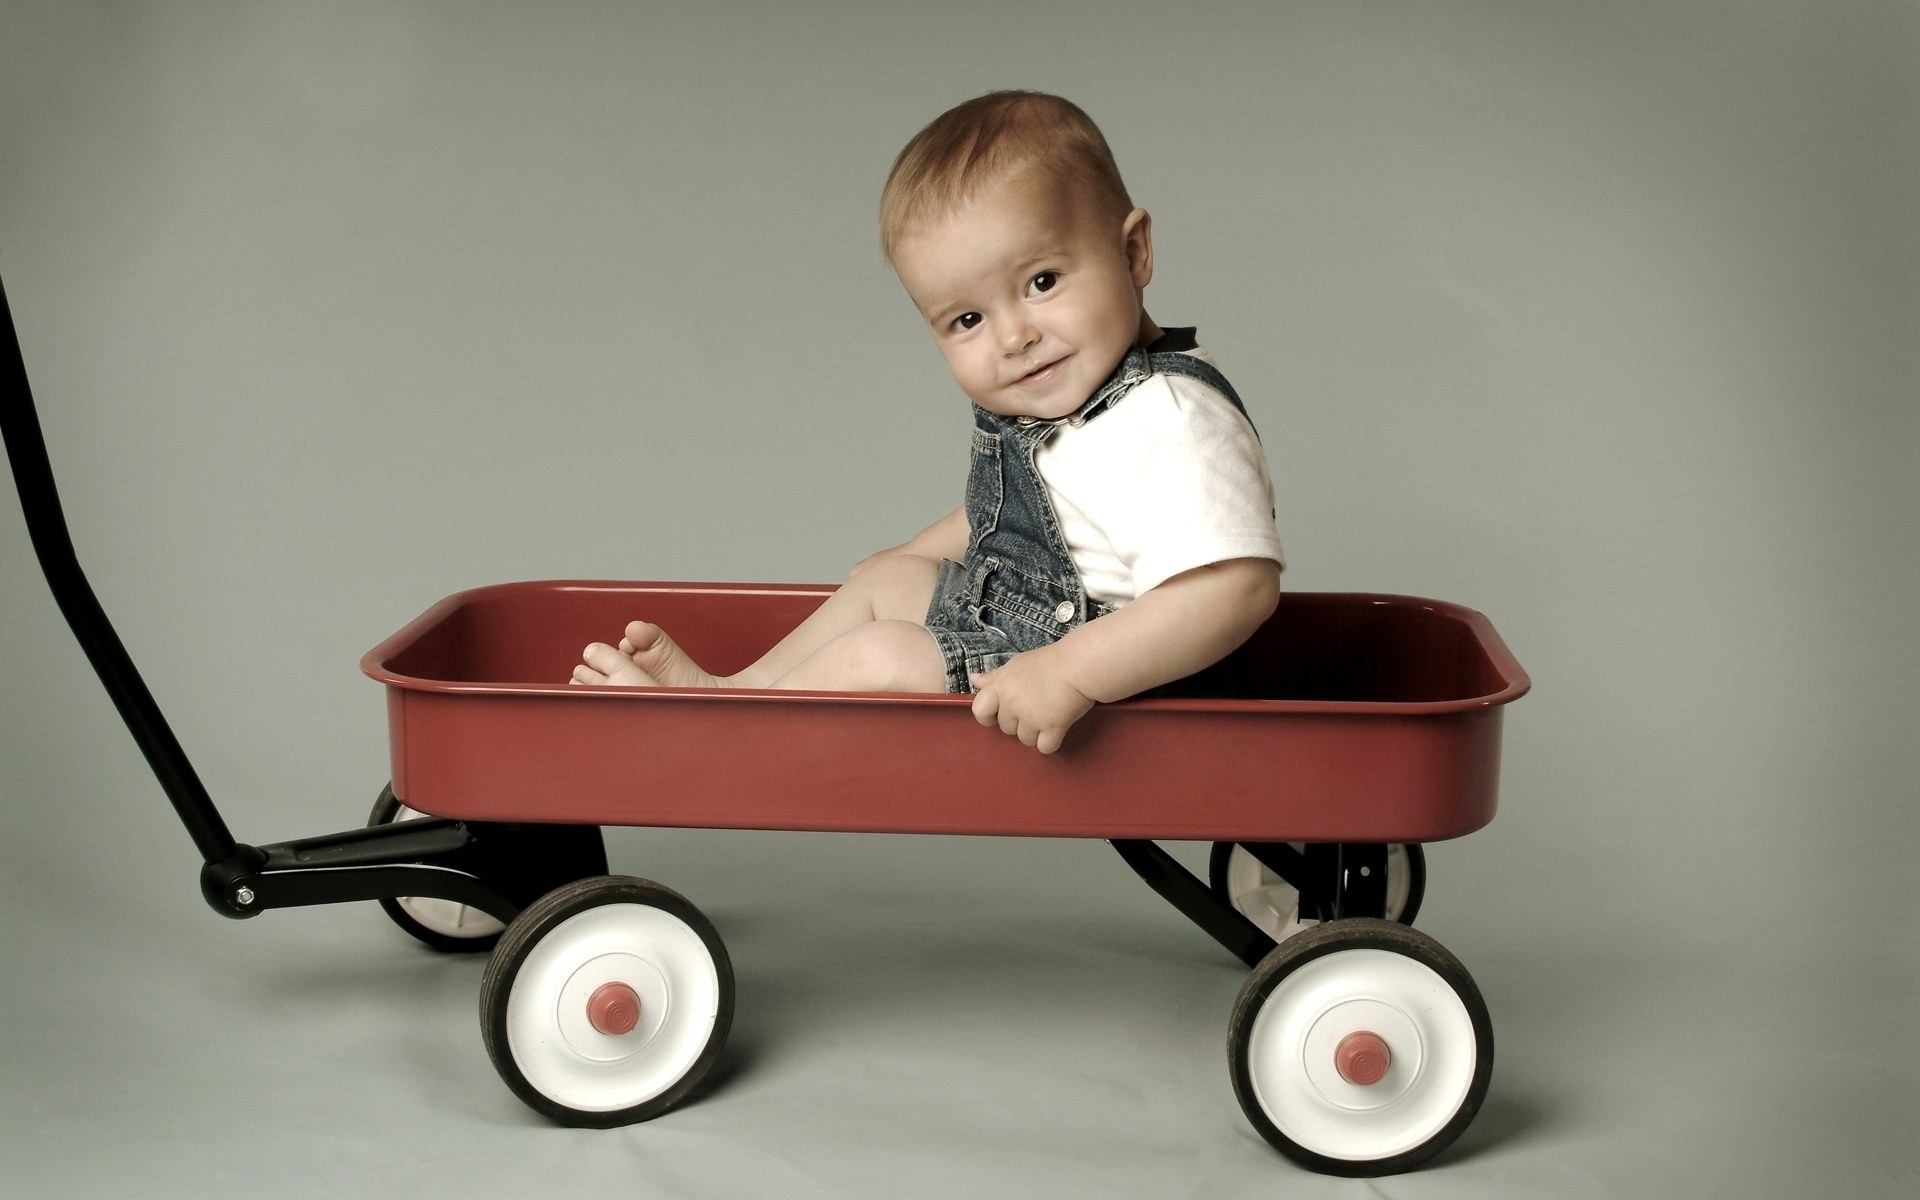 1920x1200  Wallpaper cart, baby, funny, child